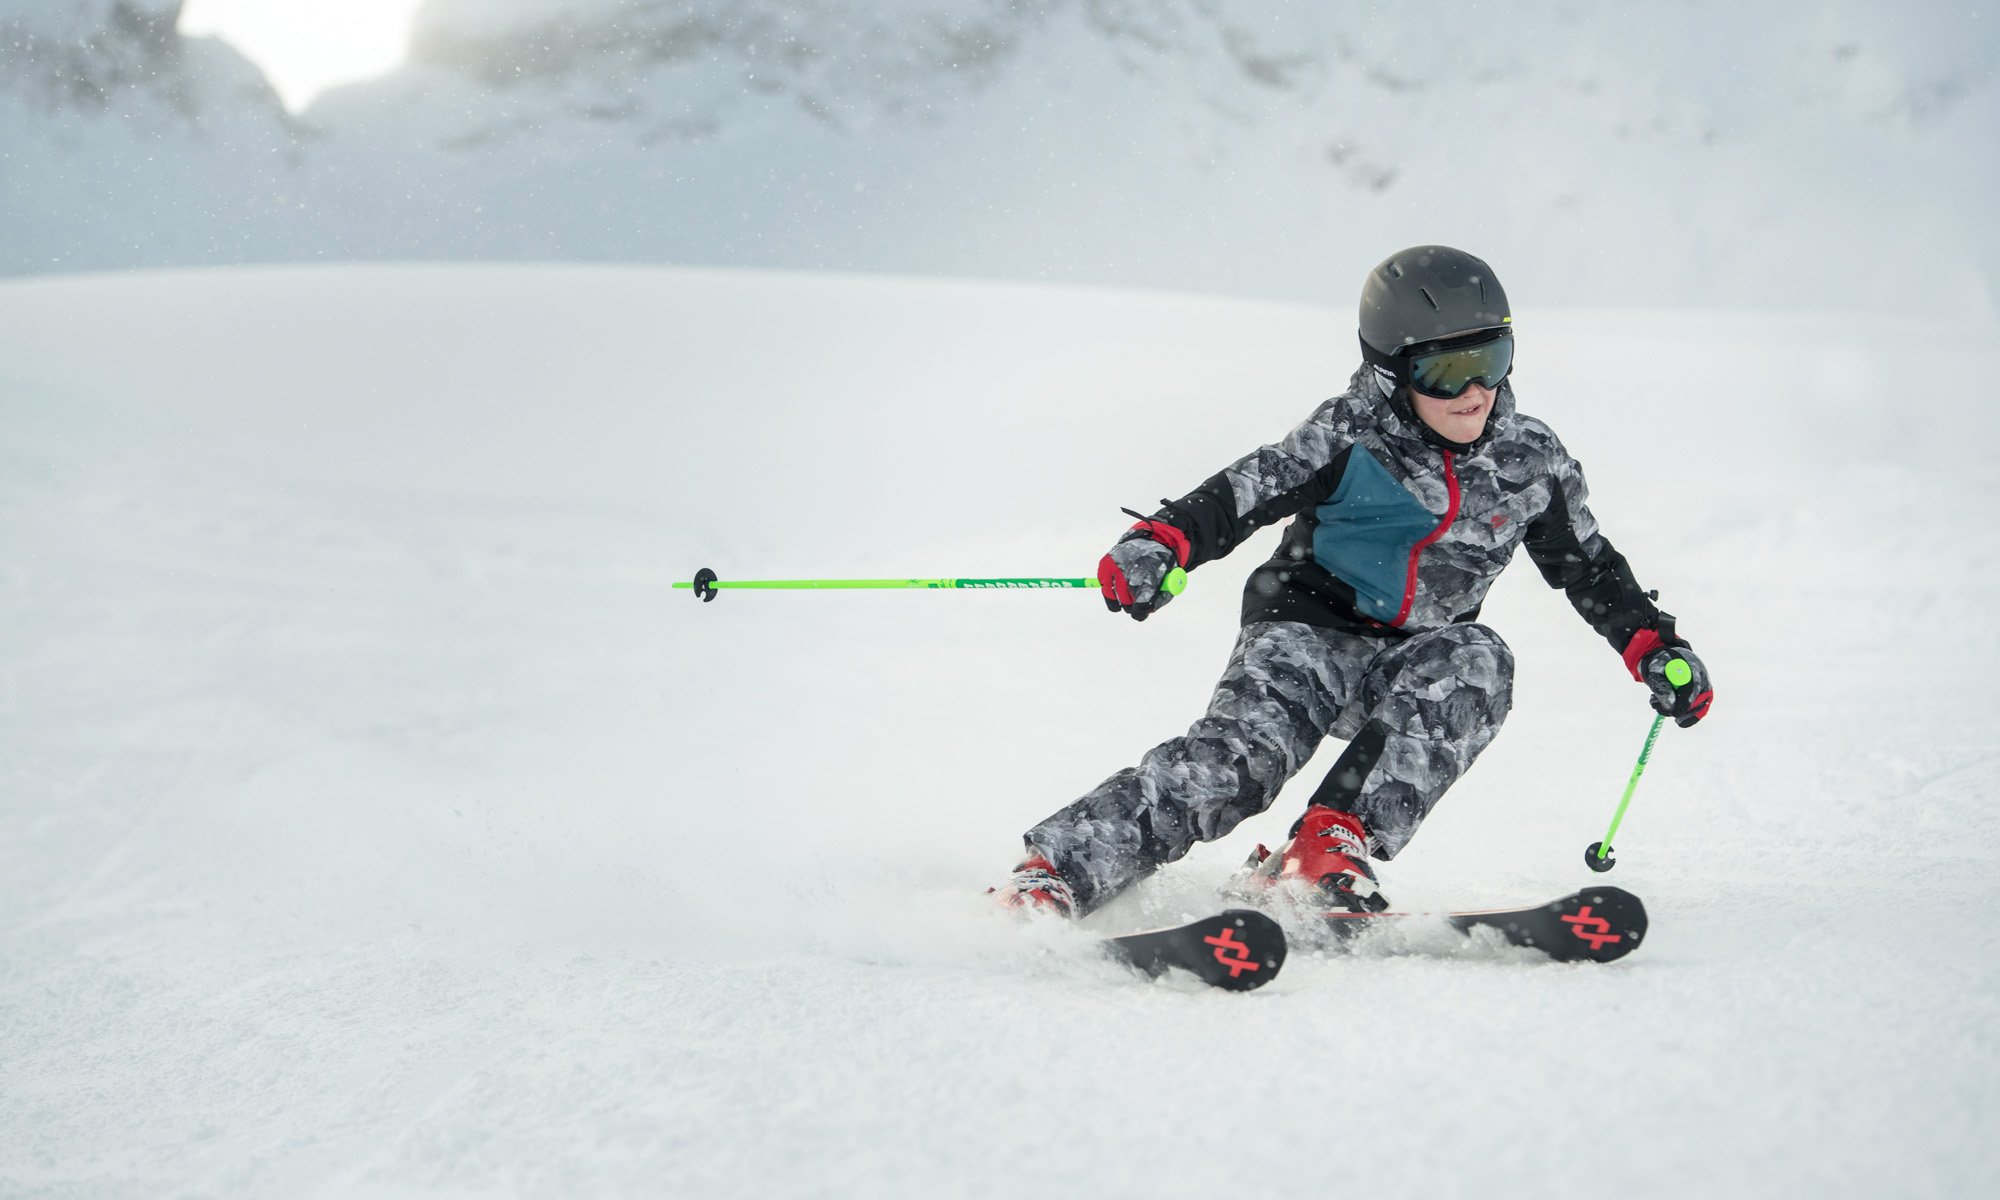 A boy skiing down the slopes in a grey camouflage outfit.